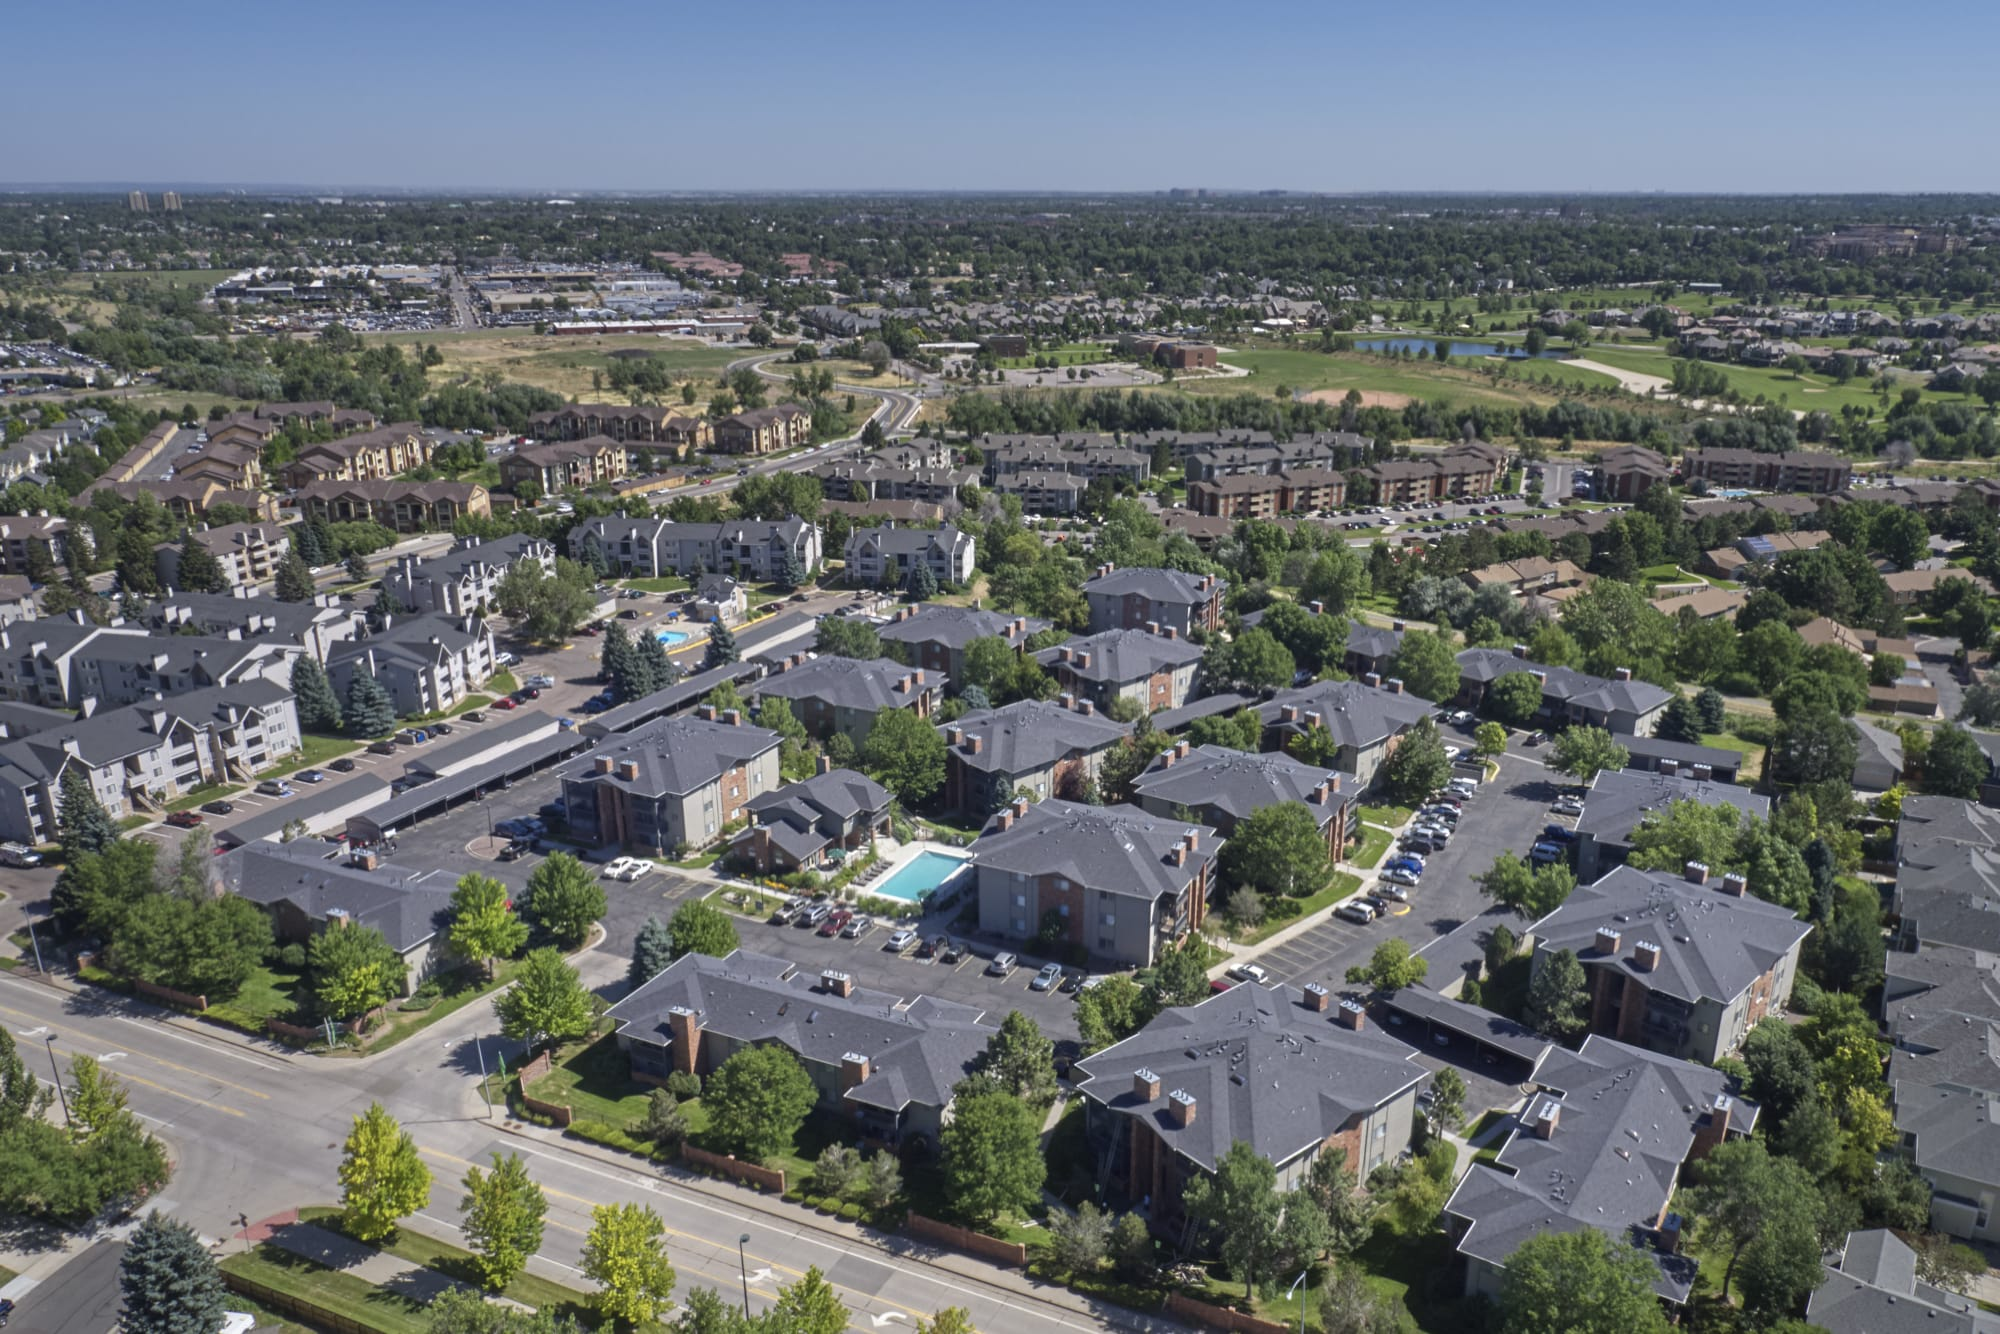 An aerial view of the property and surrounding areas at Arapahoe Club Apartments in Denver, Colorado